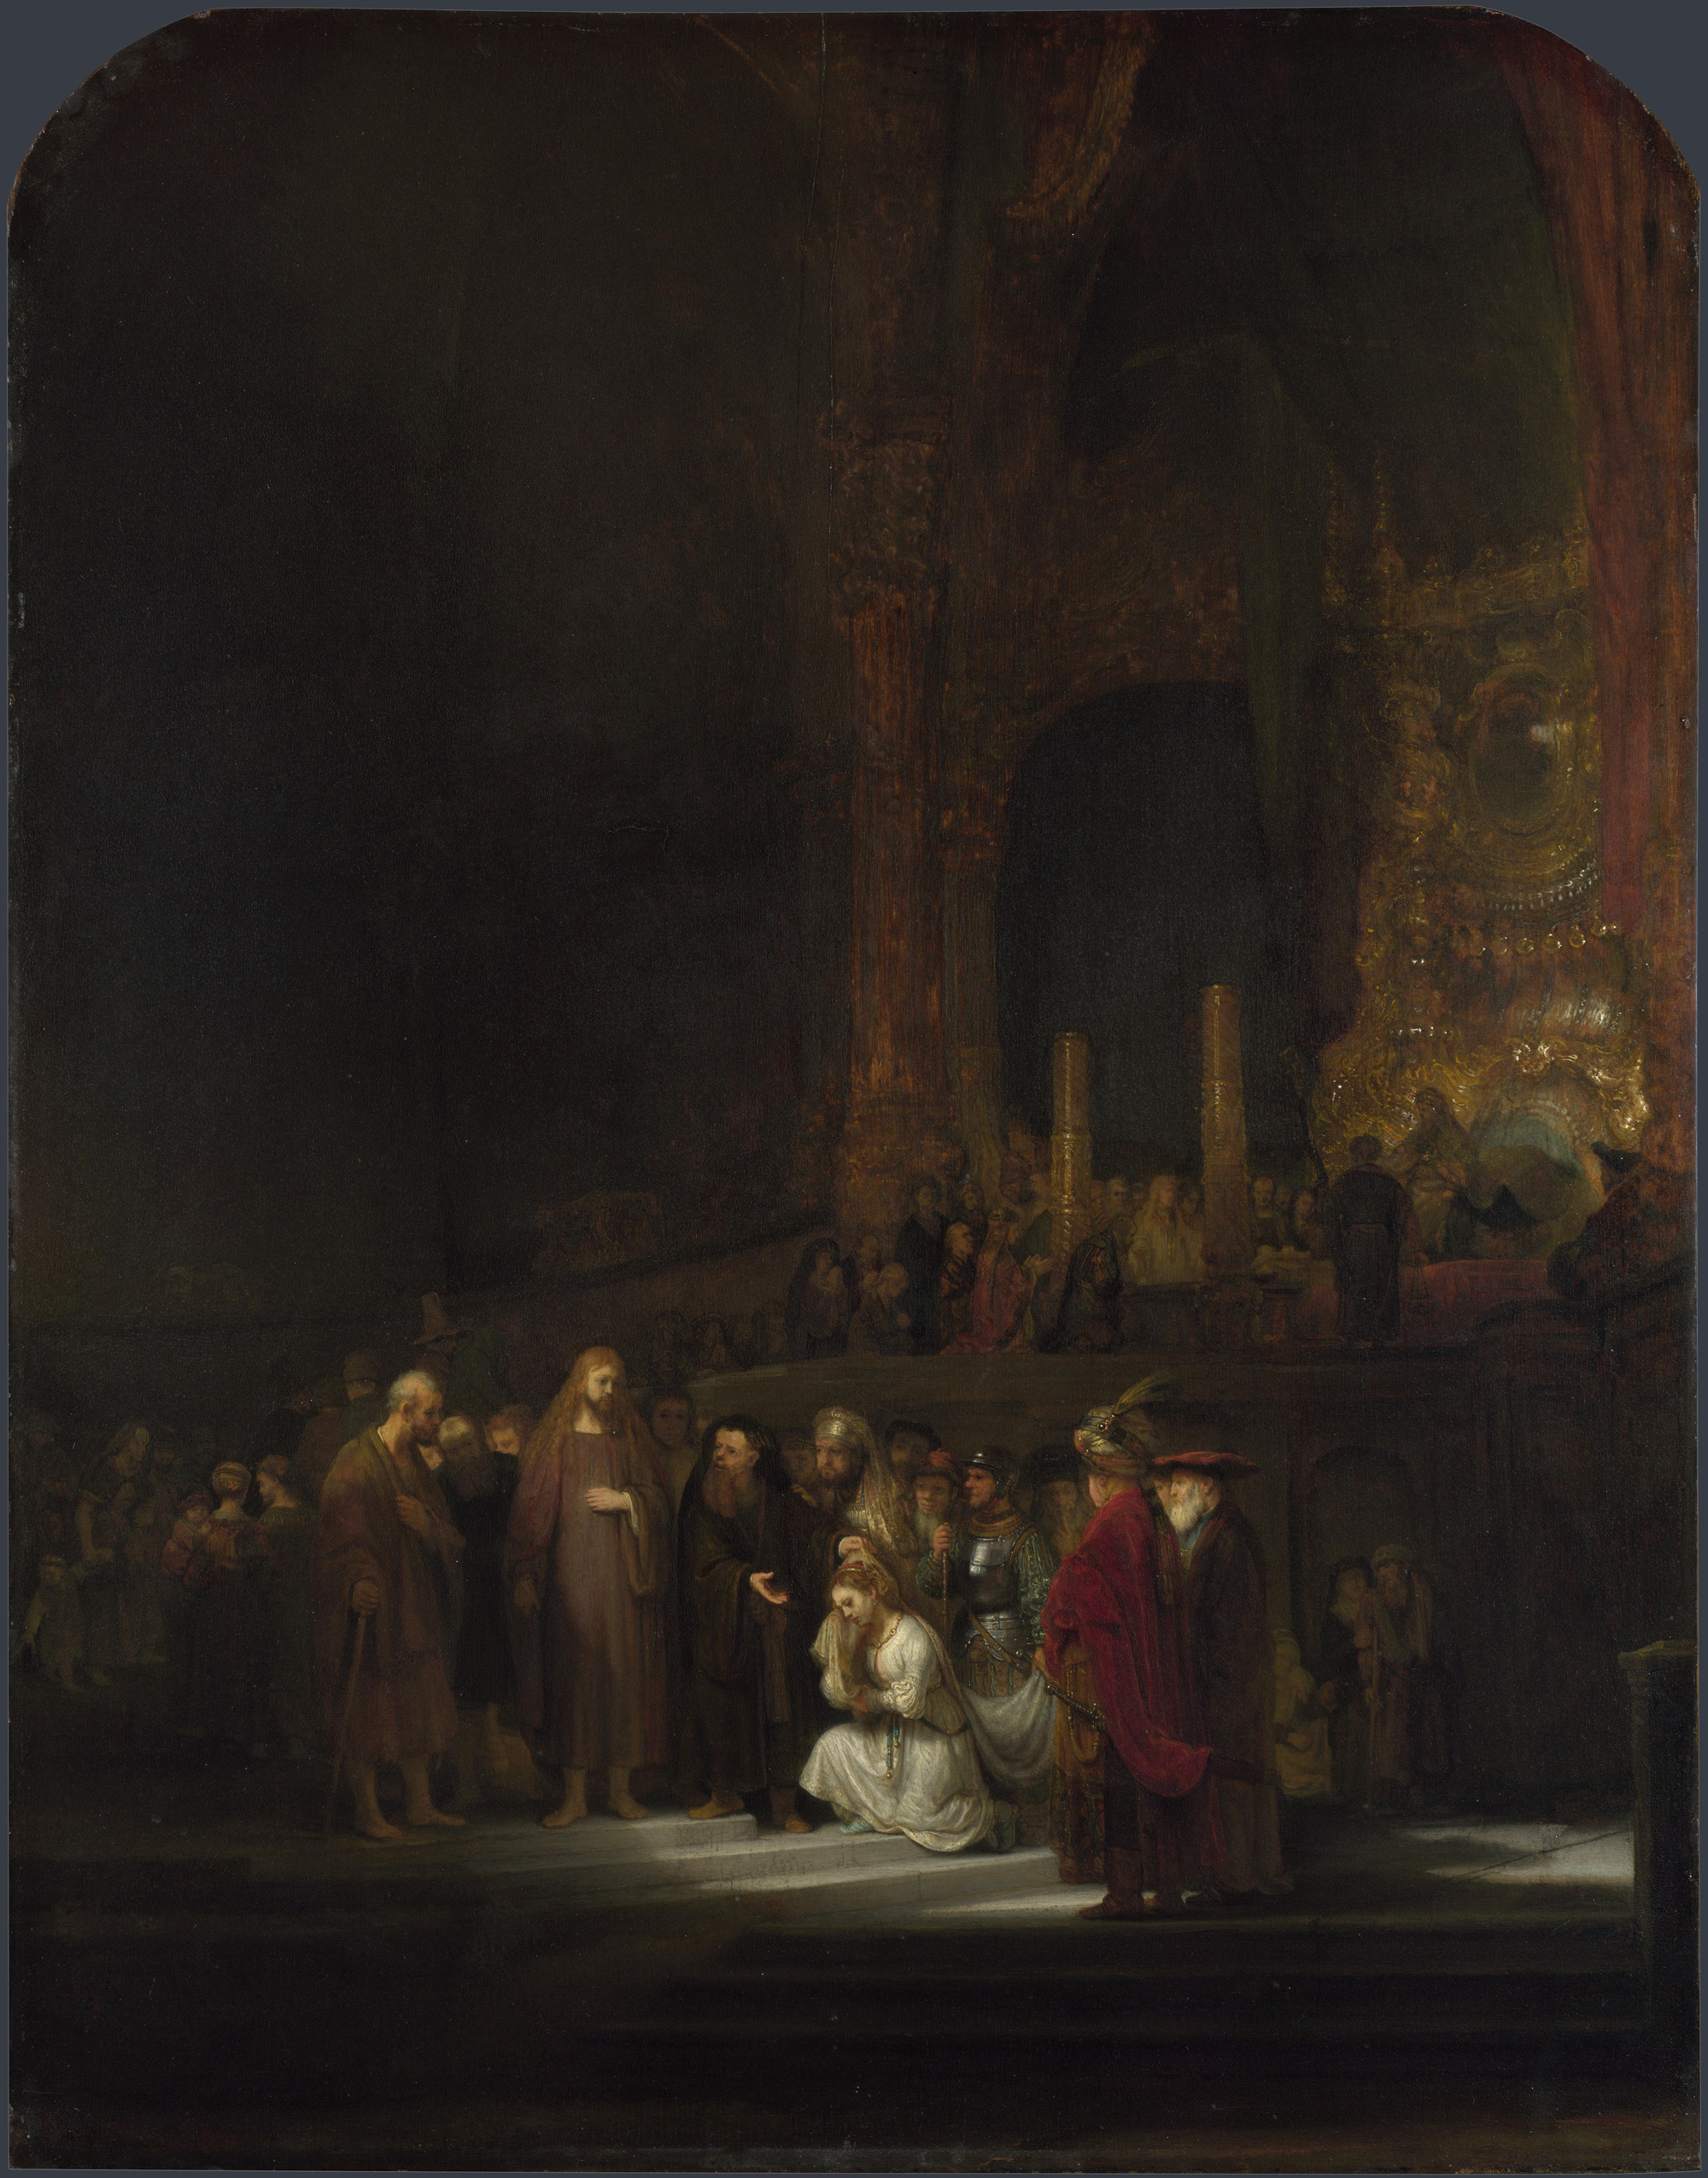 http://upload.wikimedia.org/wikipedia/commons/4/4a/Rembrandt_Christ_and_the_Woman_Taken_in_Adultery.jpg